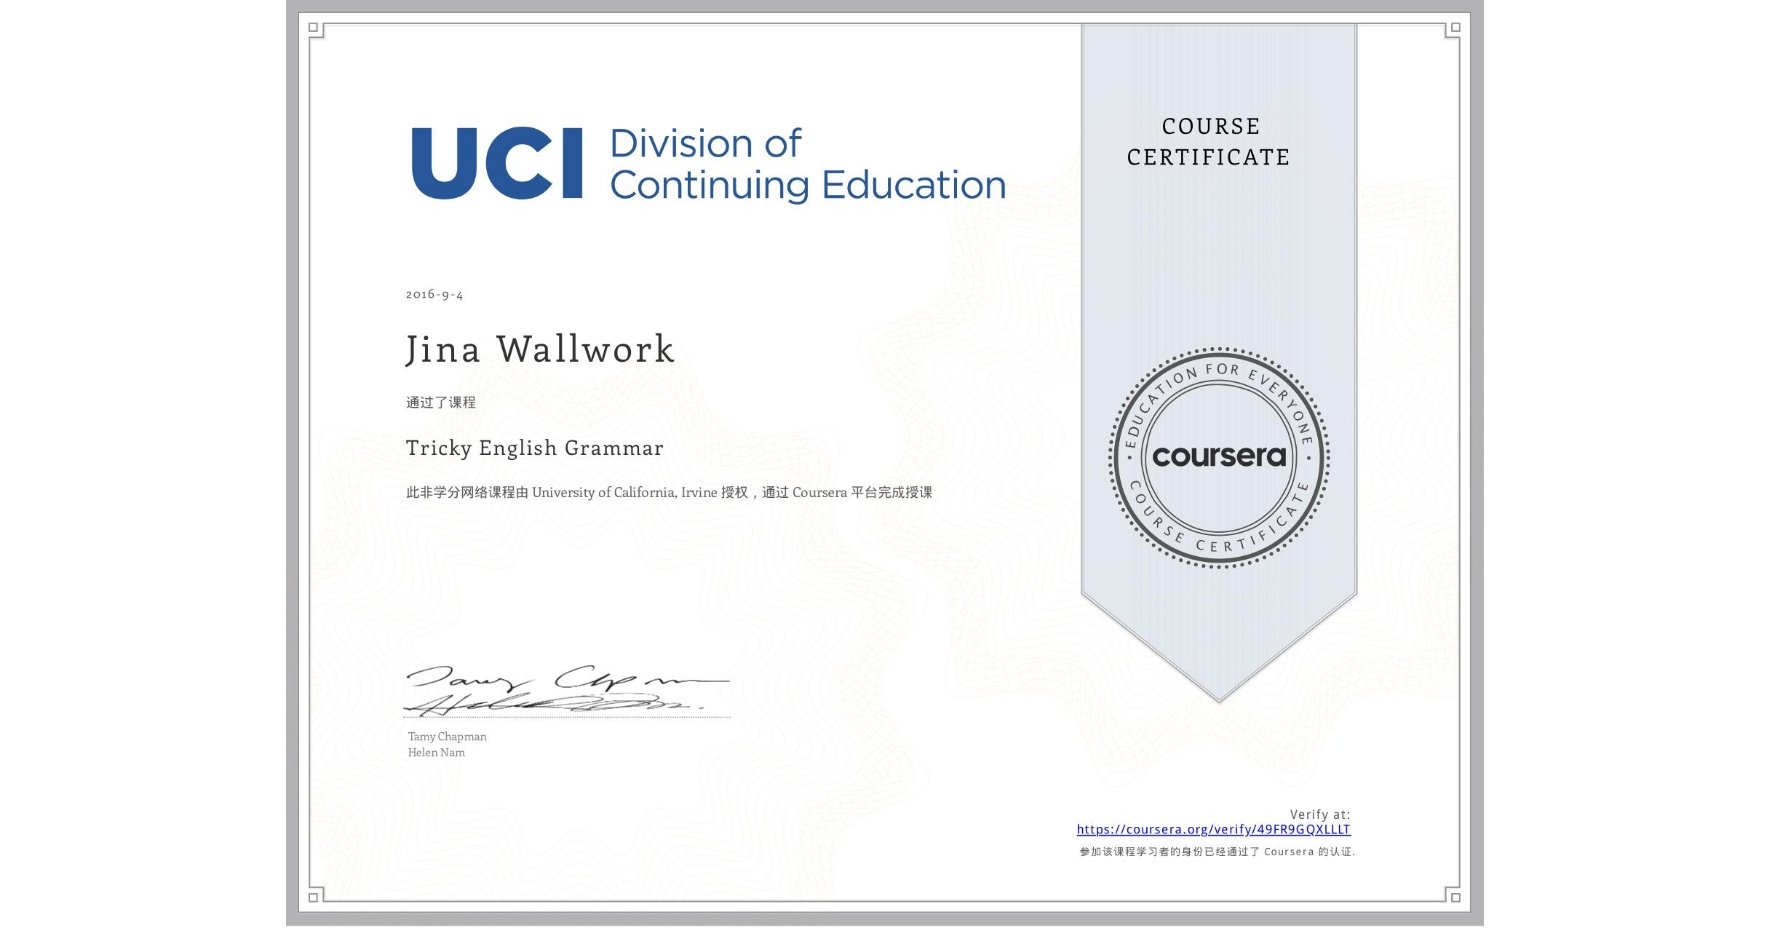 View certificate for Jina Wallwork, Tricky English Grammar, an online non-credit course authorized by University of California, Irvine and offered through Coursera